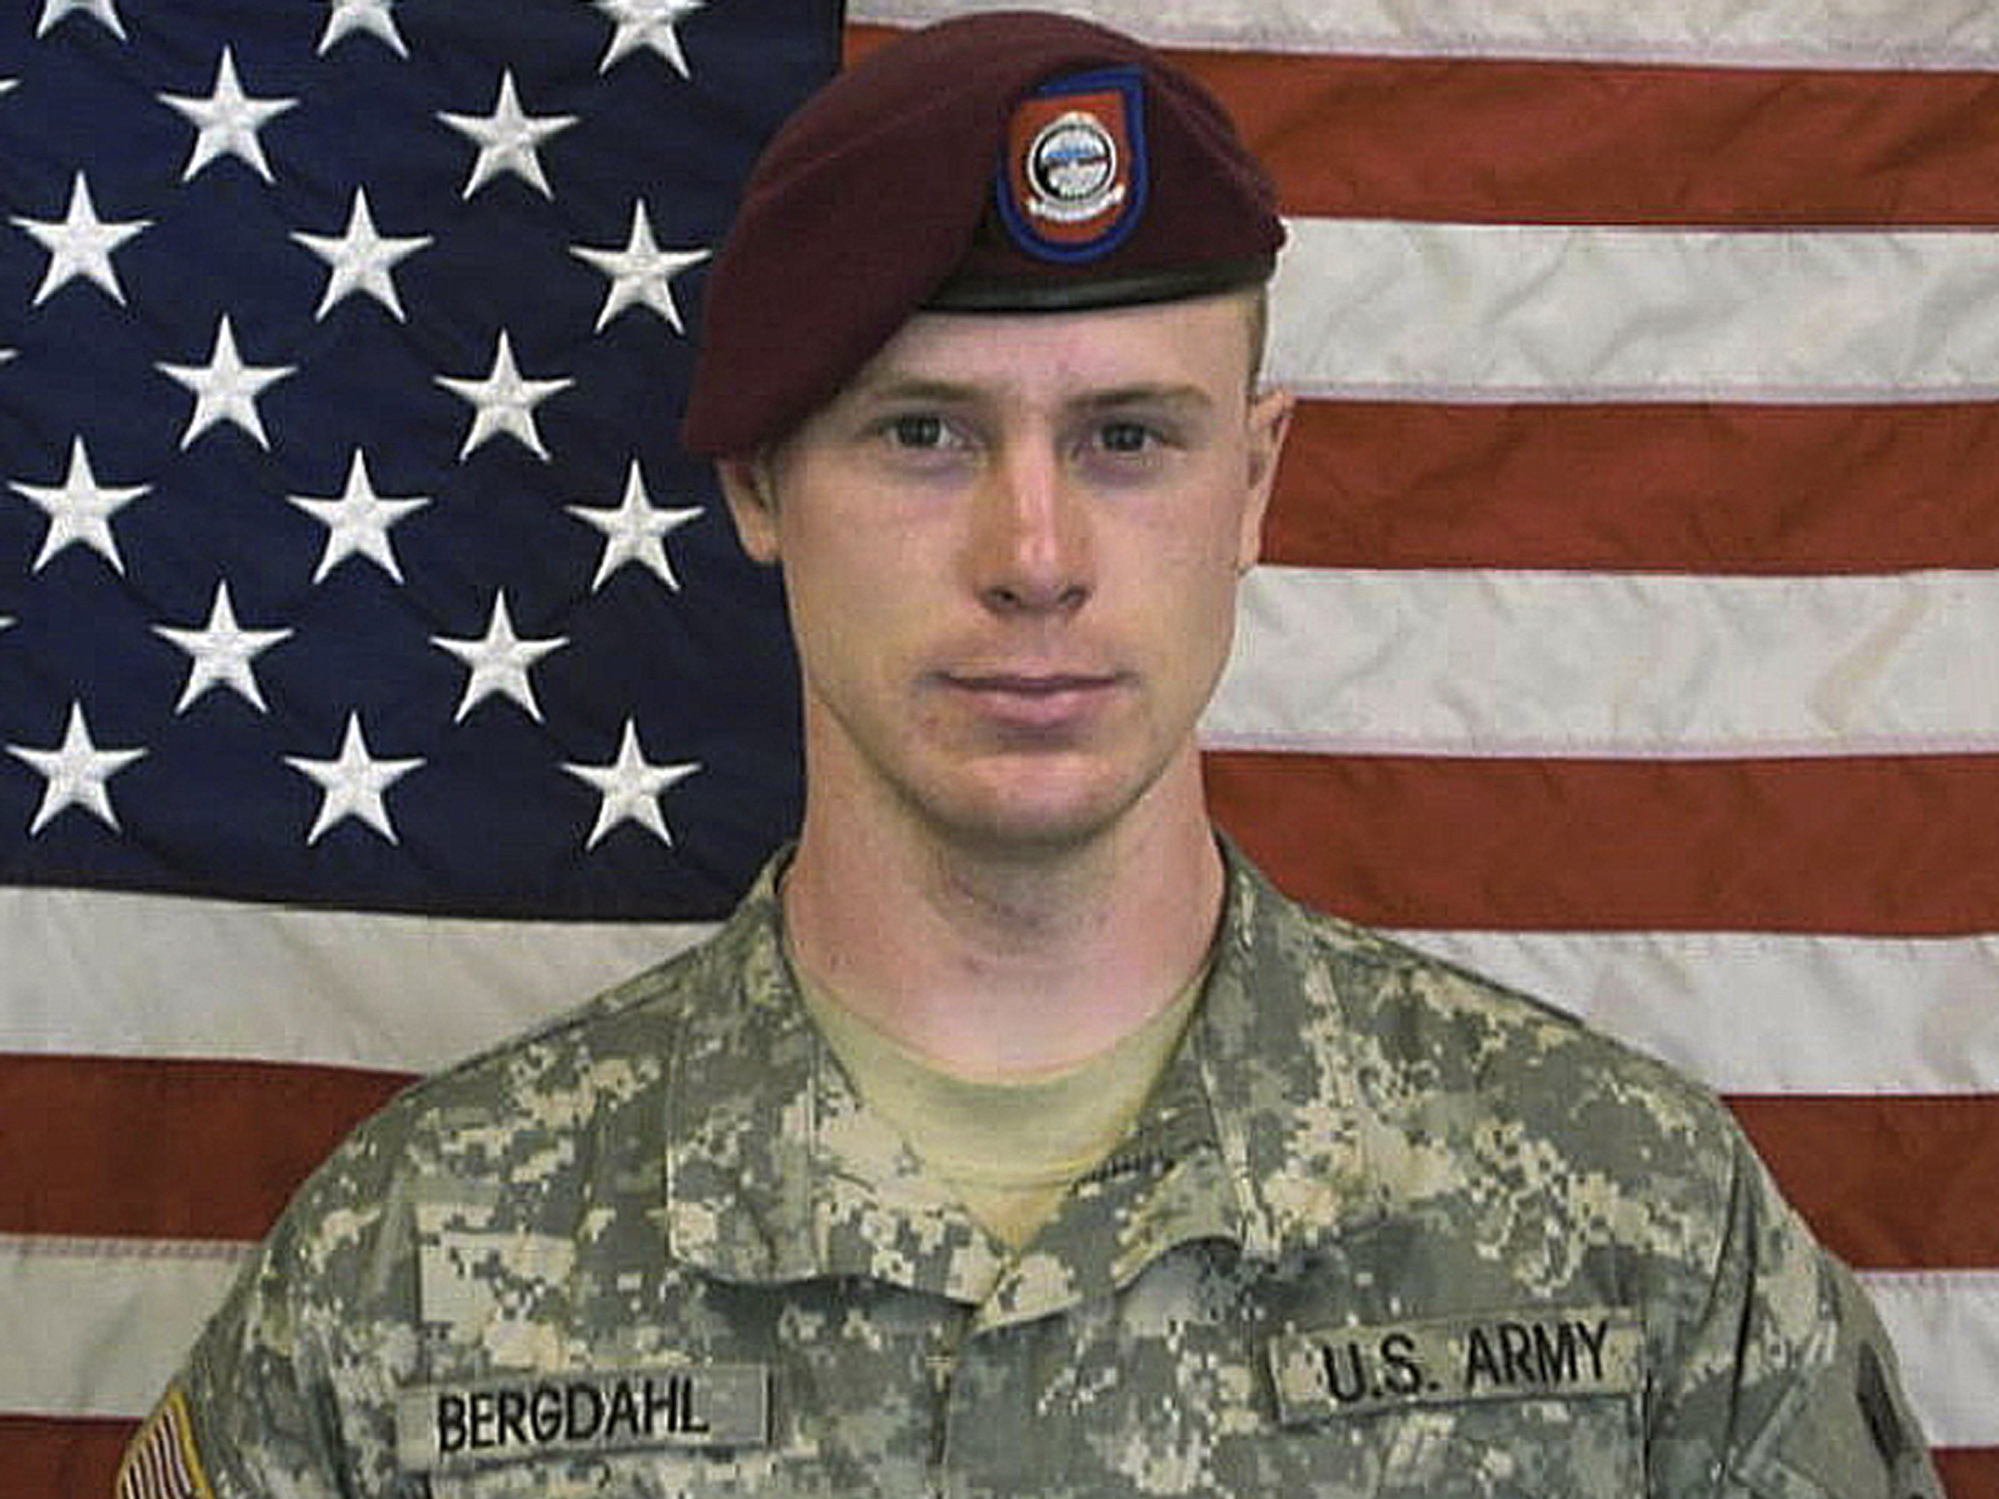 Sgt. Bowe Bergdahl will face a general court-martial for desertion. Bergdahl walked away from his outpost in Afghanistan in 2009 and was captured and held by the Taliban for five years. U.S. Army/AP